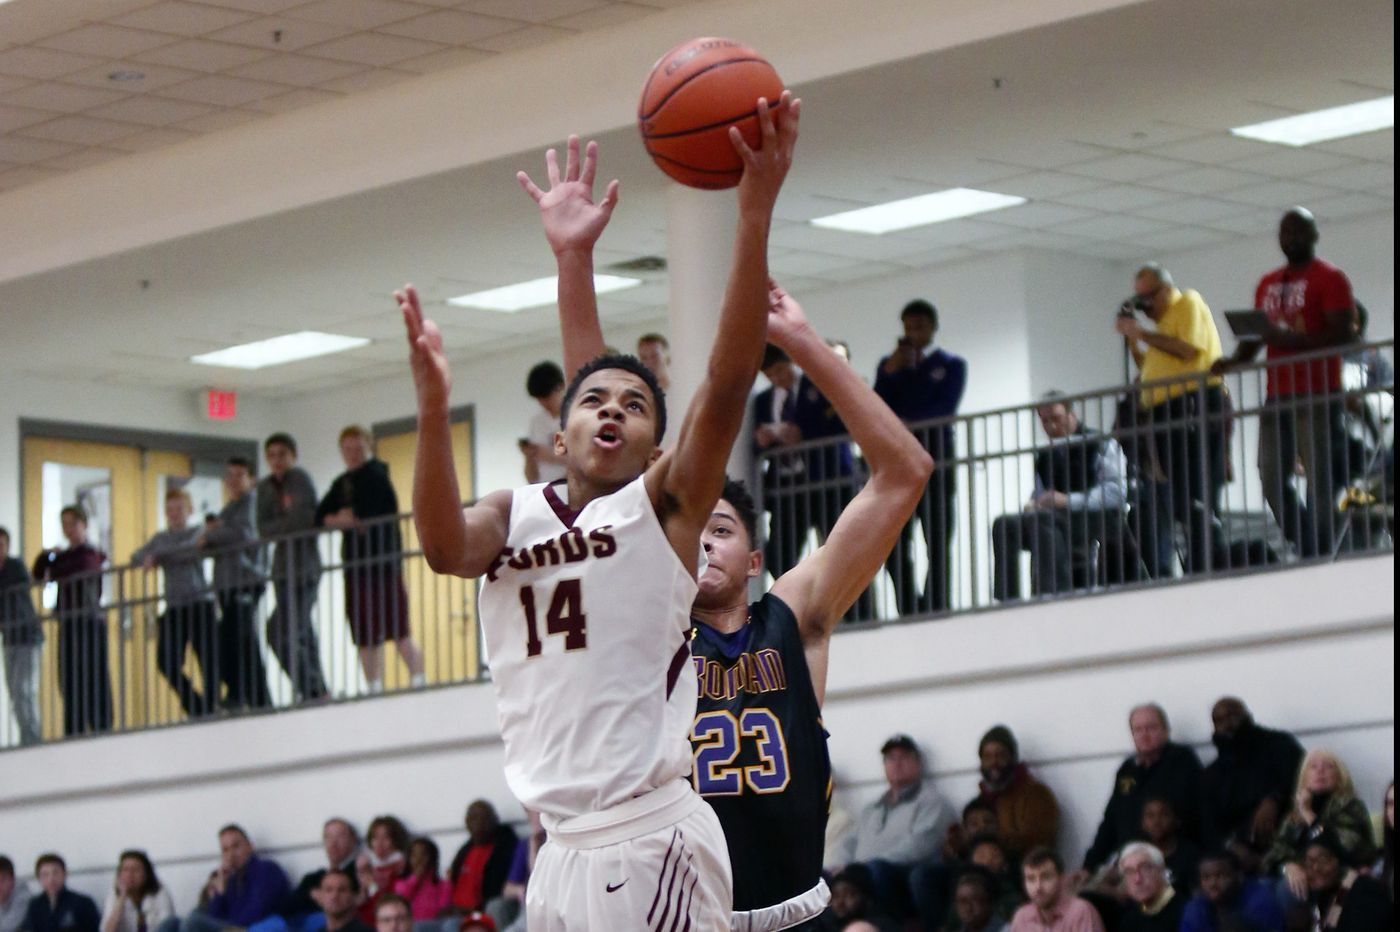 Haverford School guard Jameer Nelson Jr. commits to St. Joseph's, following his father's footsteps